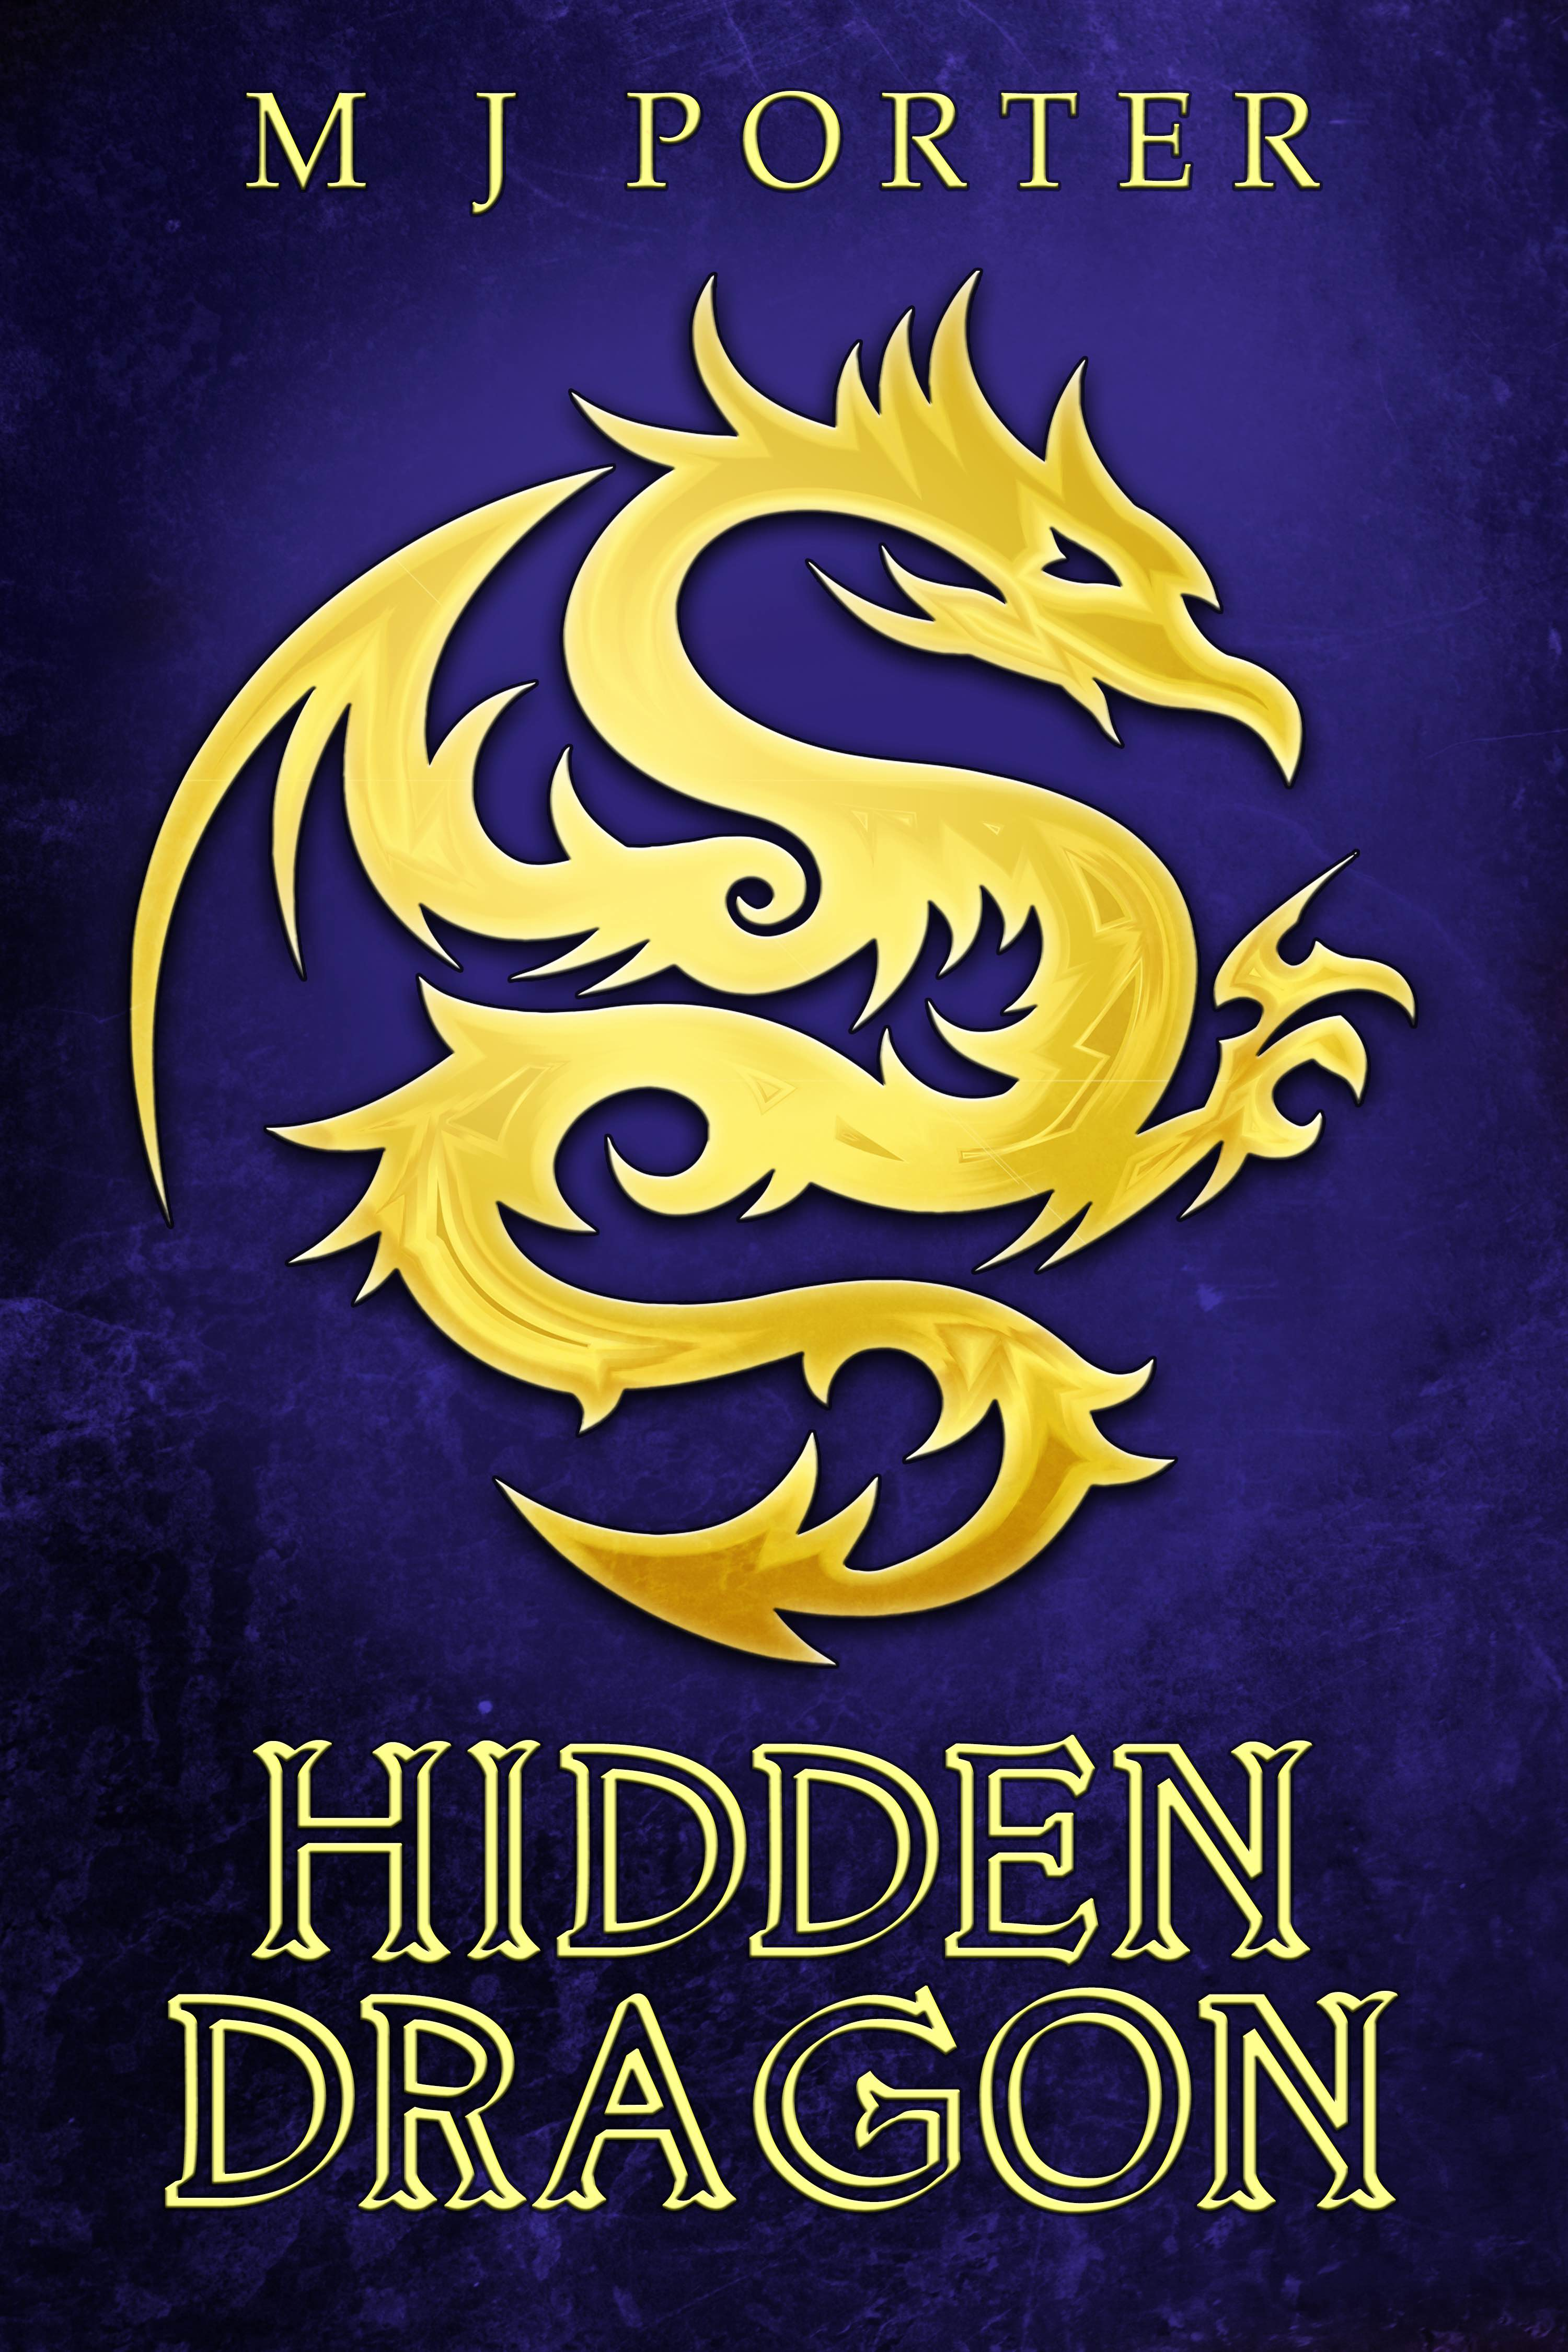 hidden dragon copy